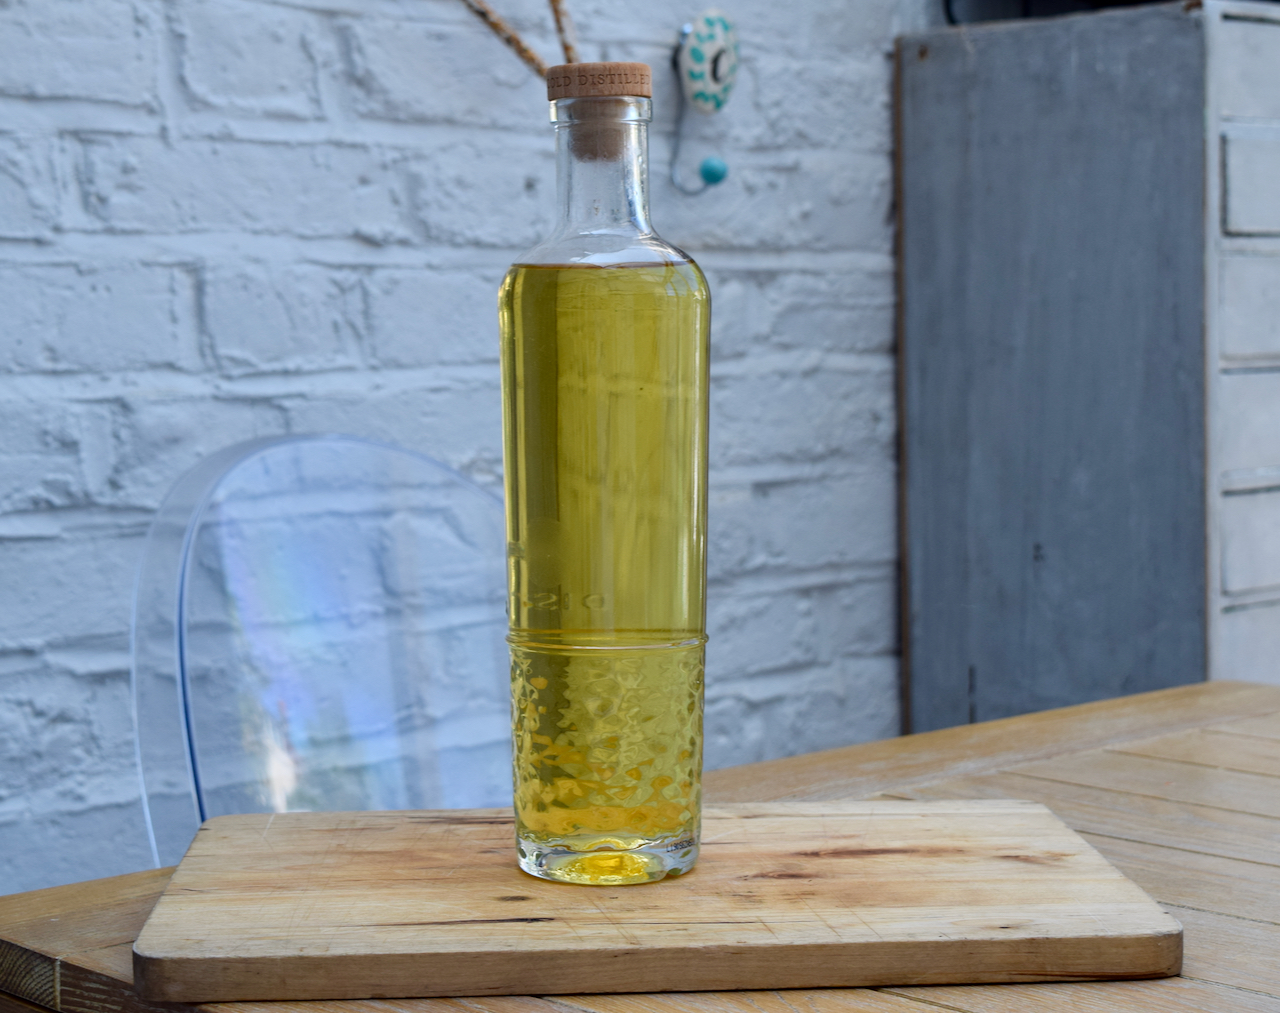 Homemade Orange and Lime Gin recipe from Lucy Loves Food Blog